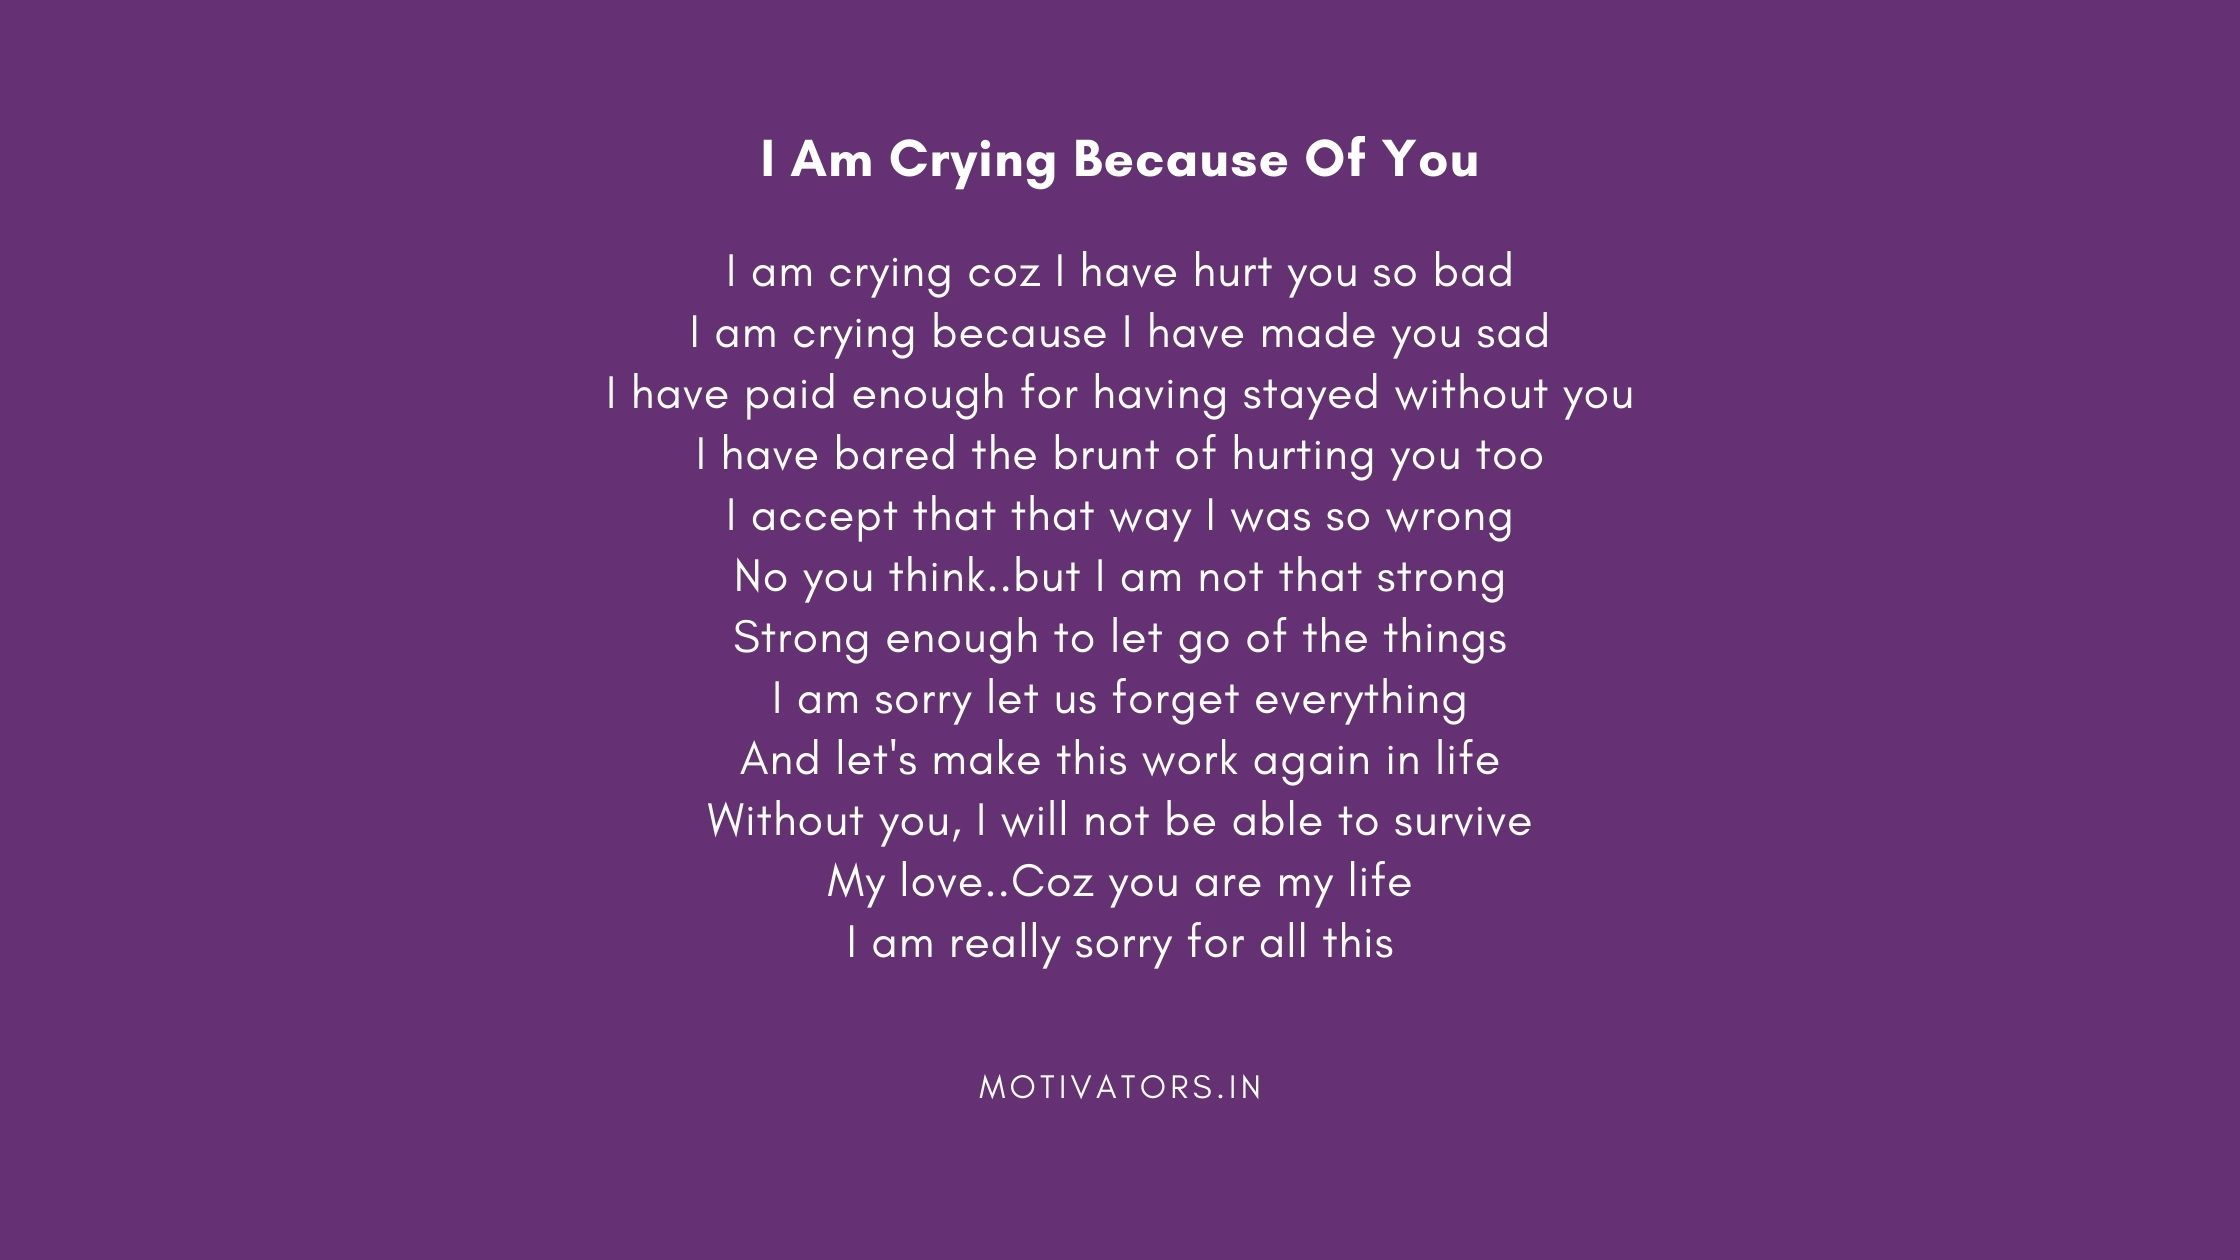 I Am Crying Because Of You